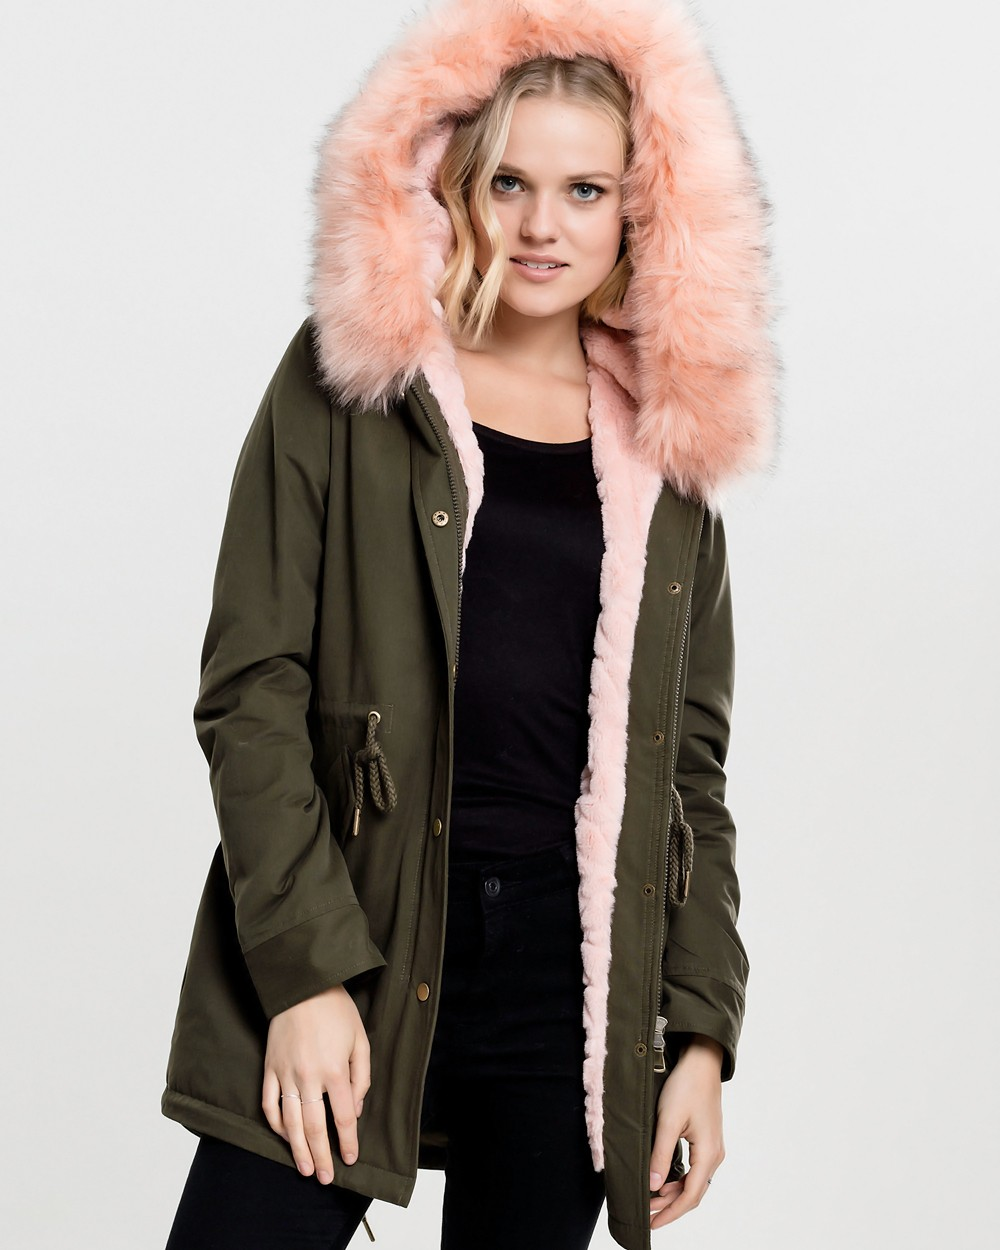 Winter jacket with teddy lining pink teddy lined parka olive - winter jacket BDYNZNX